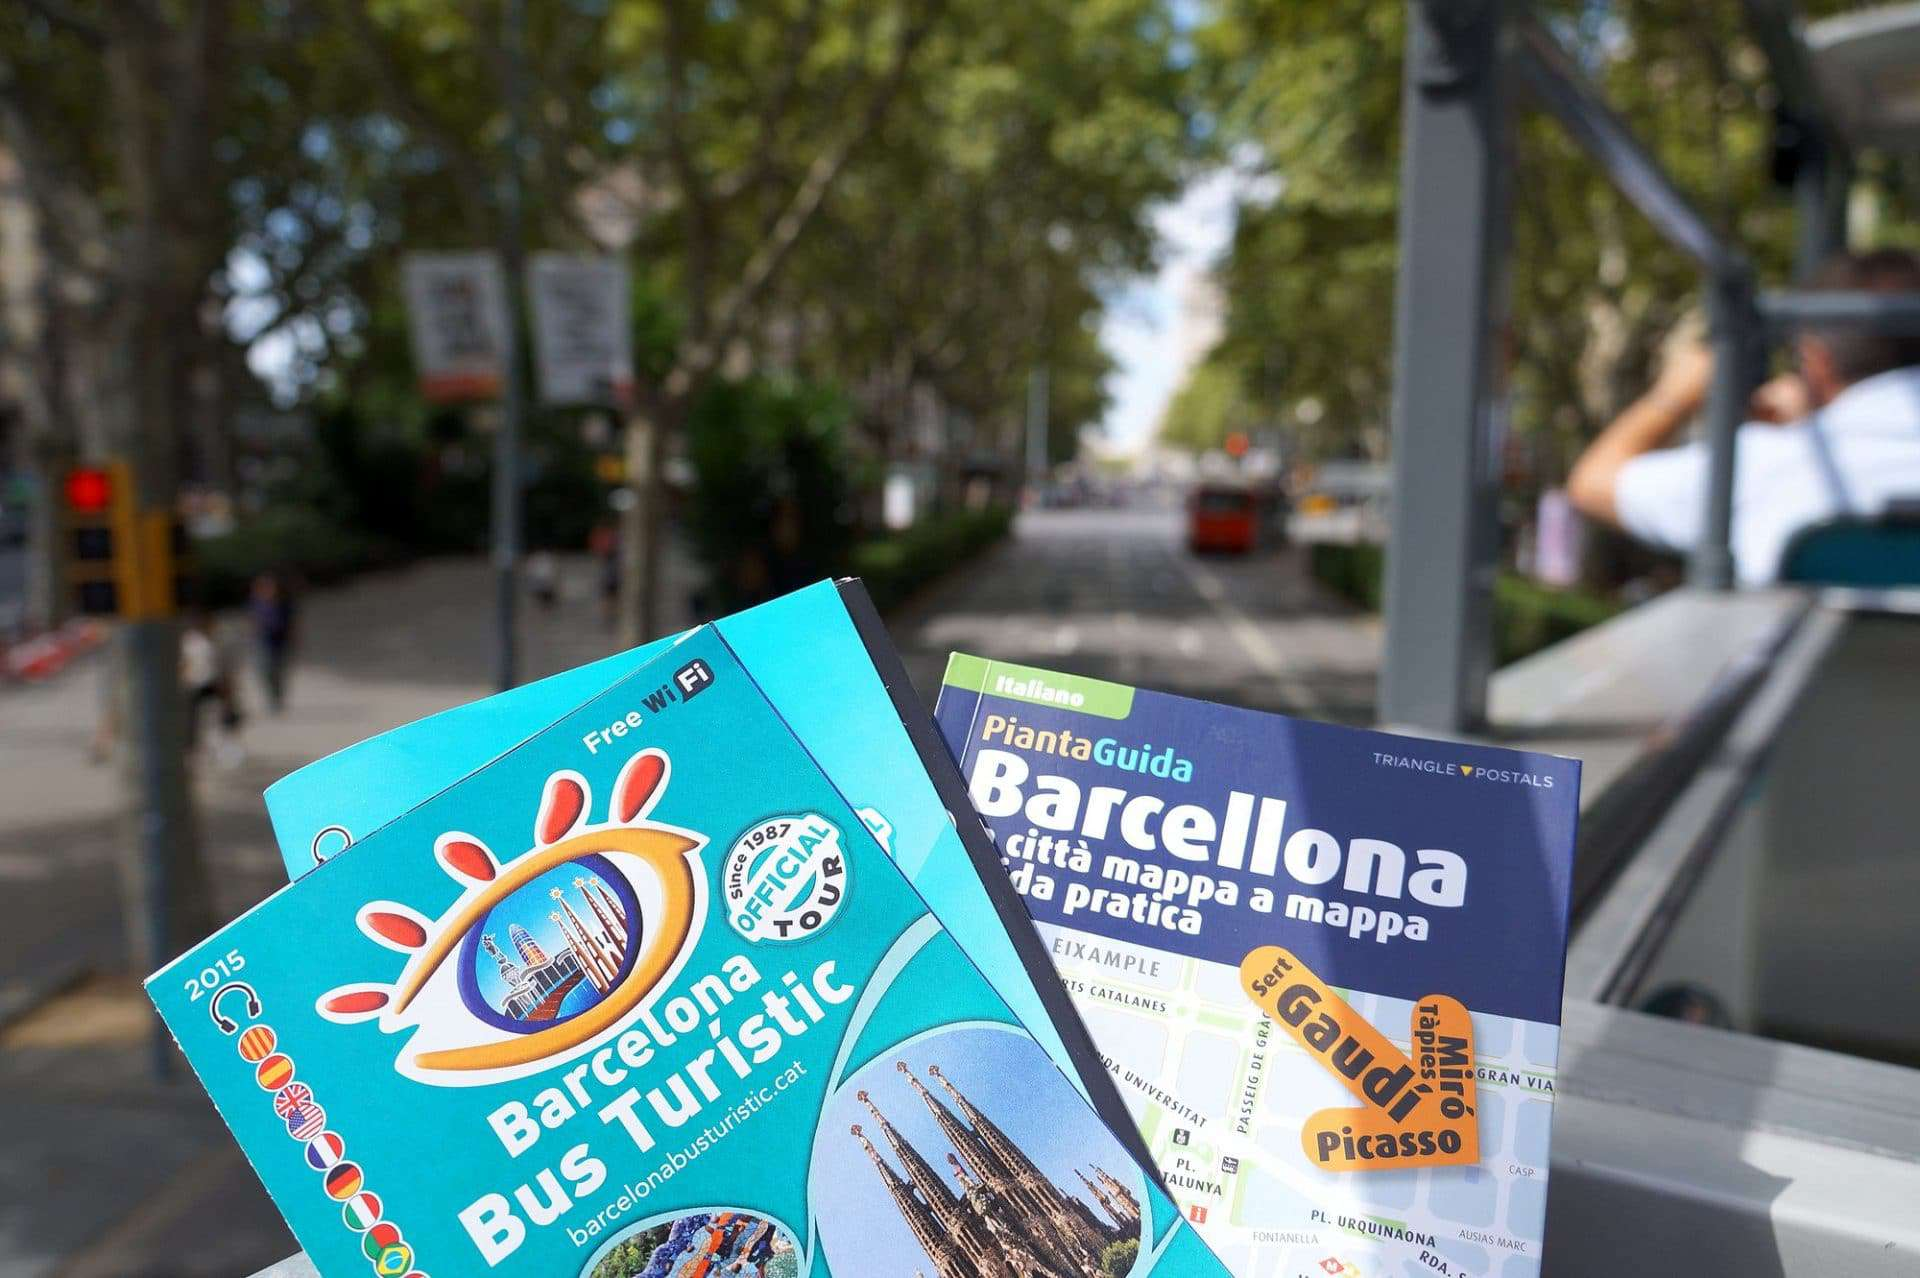 Visita guidata di Barcellona in italiano: tour privati e di gruppo in bici e in bus